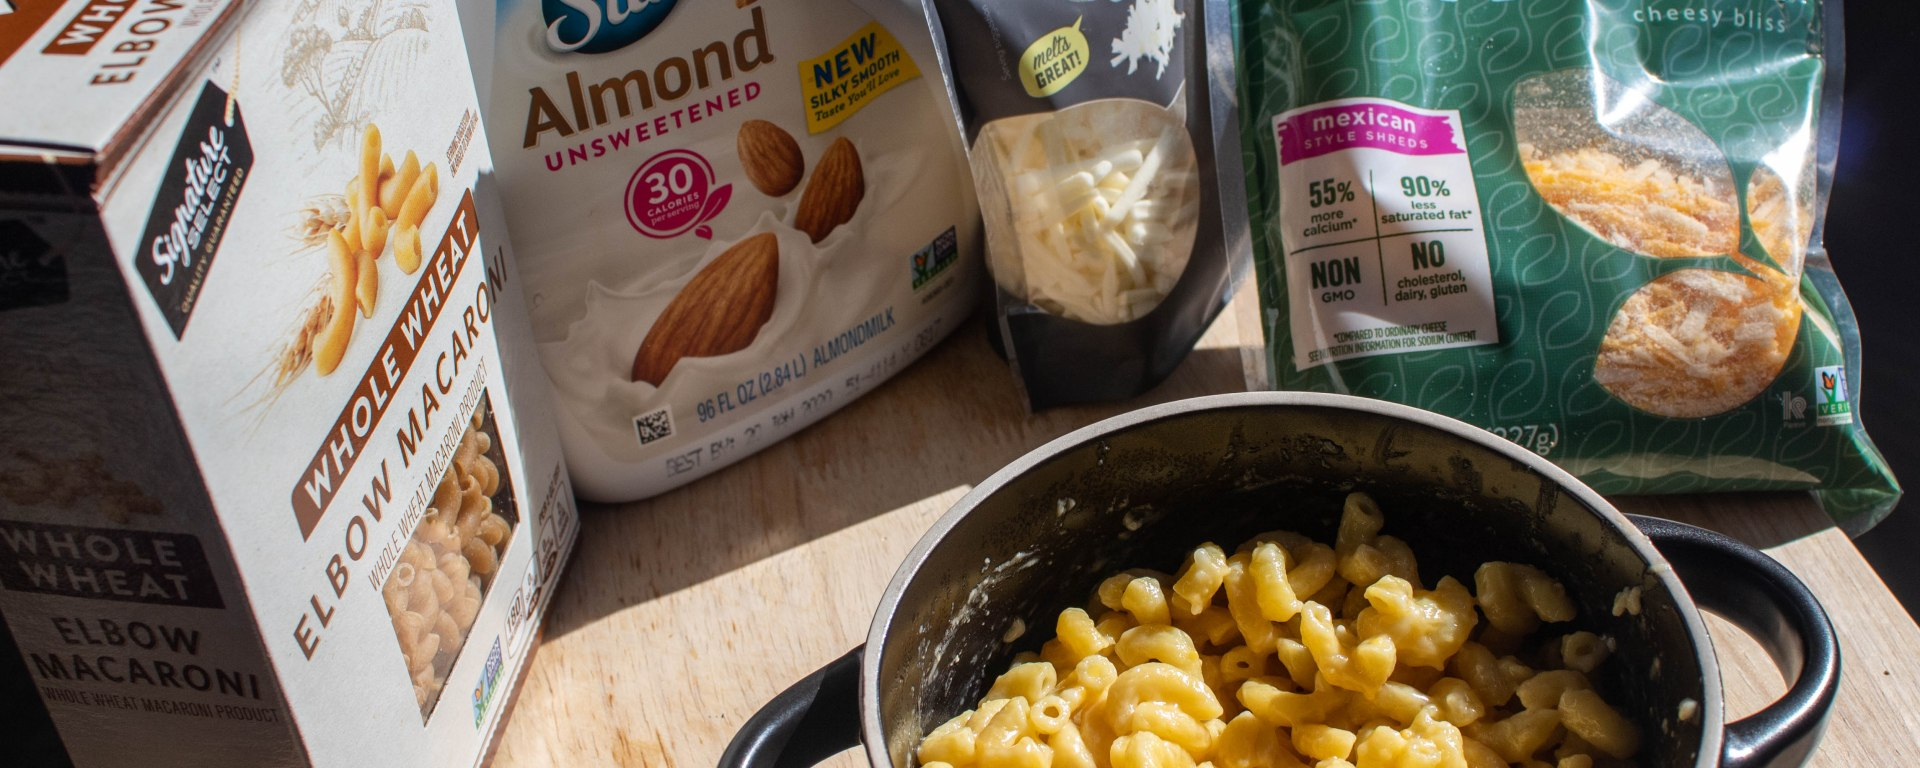 Consider trying vegan alternatives when making mac n' cheese.